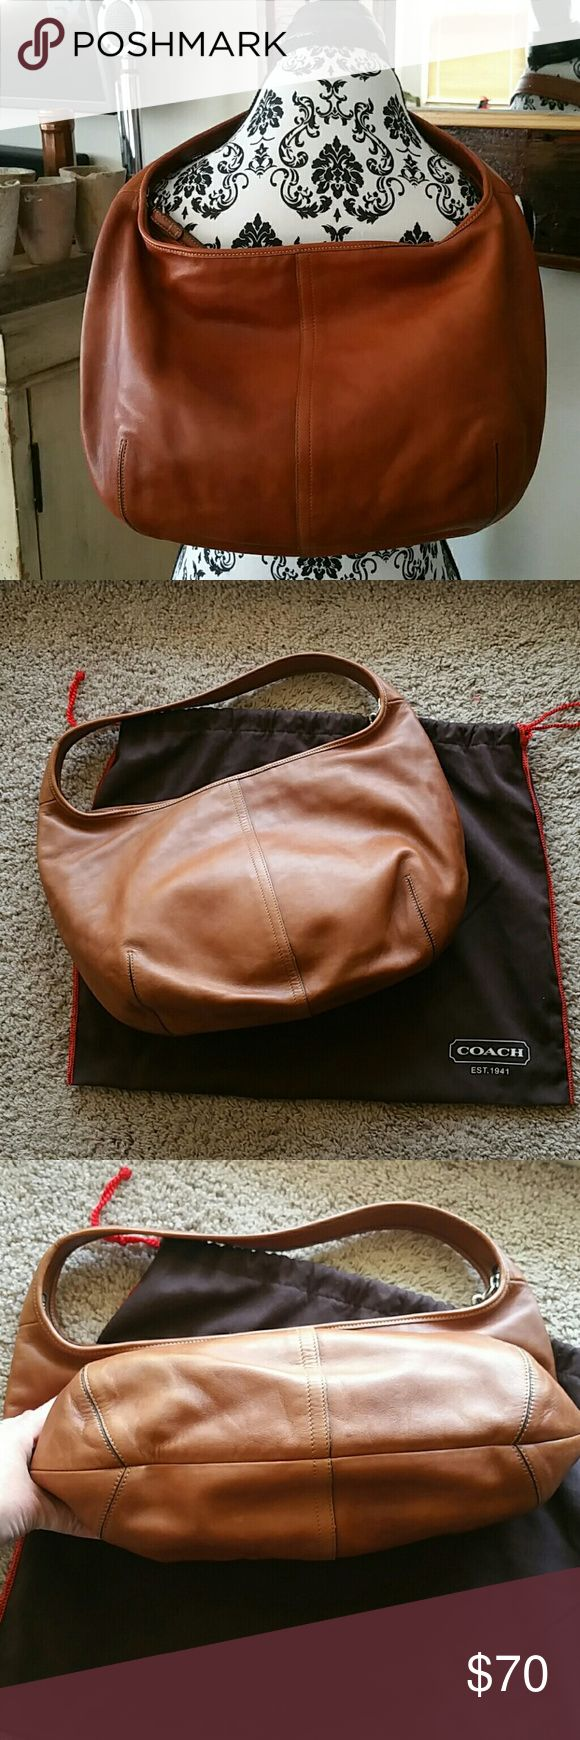 "Coach hobo bag Like new brown leather hobo. Zipper closure,  inside includes large zipper closure pocket, and 2 open top pockets. Solid leather strap, is not adjustable.  Dust cover included. 16"" across,  11.5"" deep. No stains. Very clean. Please ask questions prior to purchase. Coach Bags Hobos"